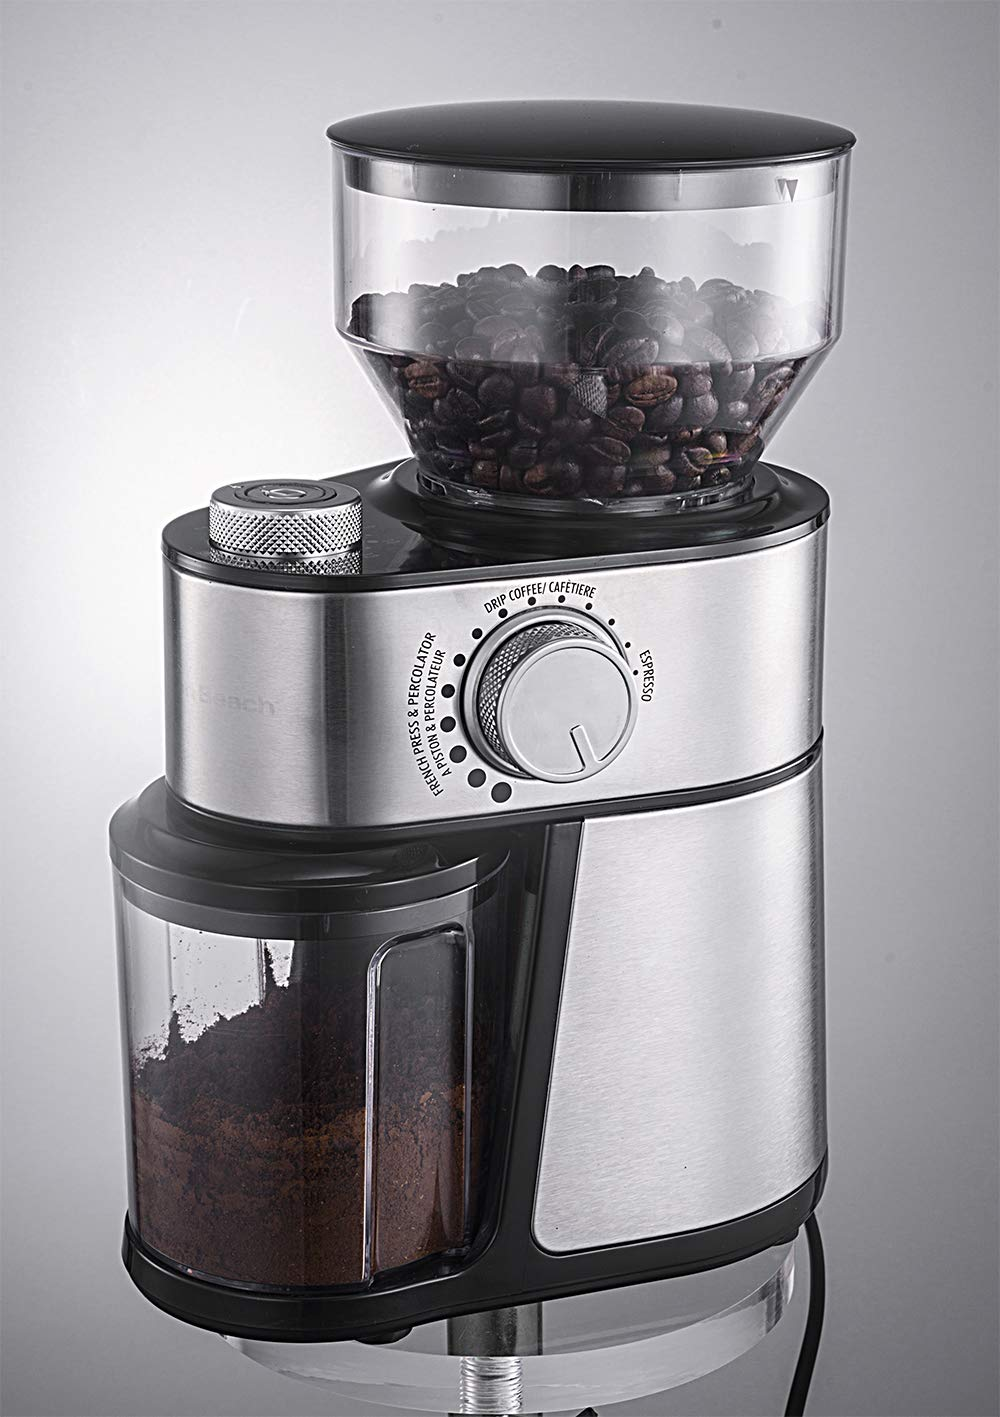 Andronicas Coffee Bean Burr Grinder Machine - Espresso Grinder Automatic Burr Electric Grinder for Drip, Percolator, French Press, American, Italian Coffee Makers 1 Year Guarantee Gift